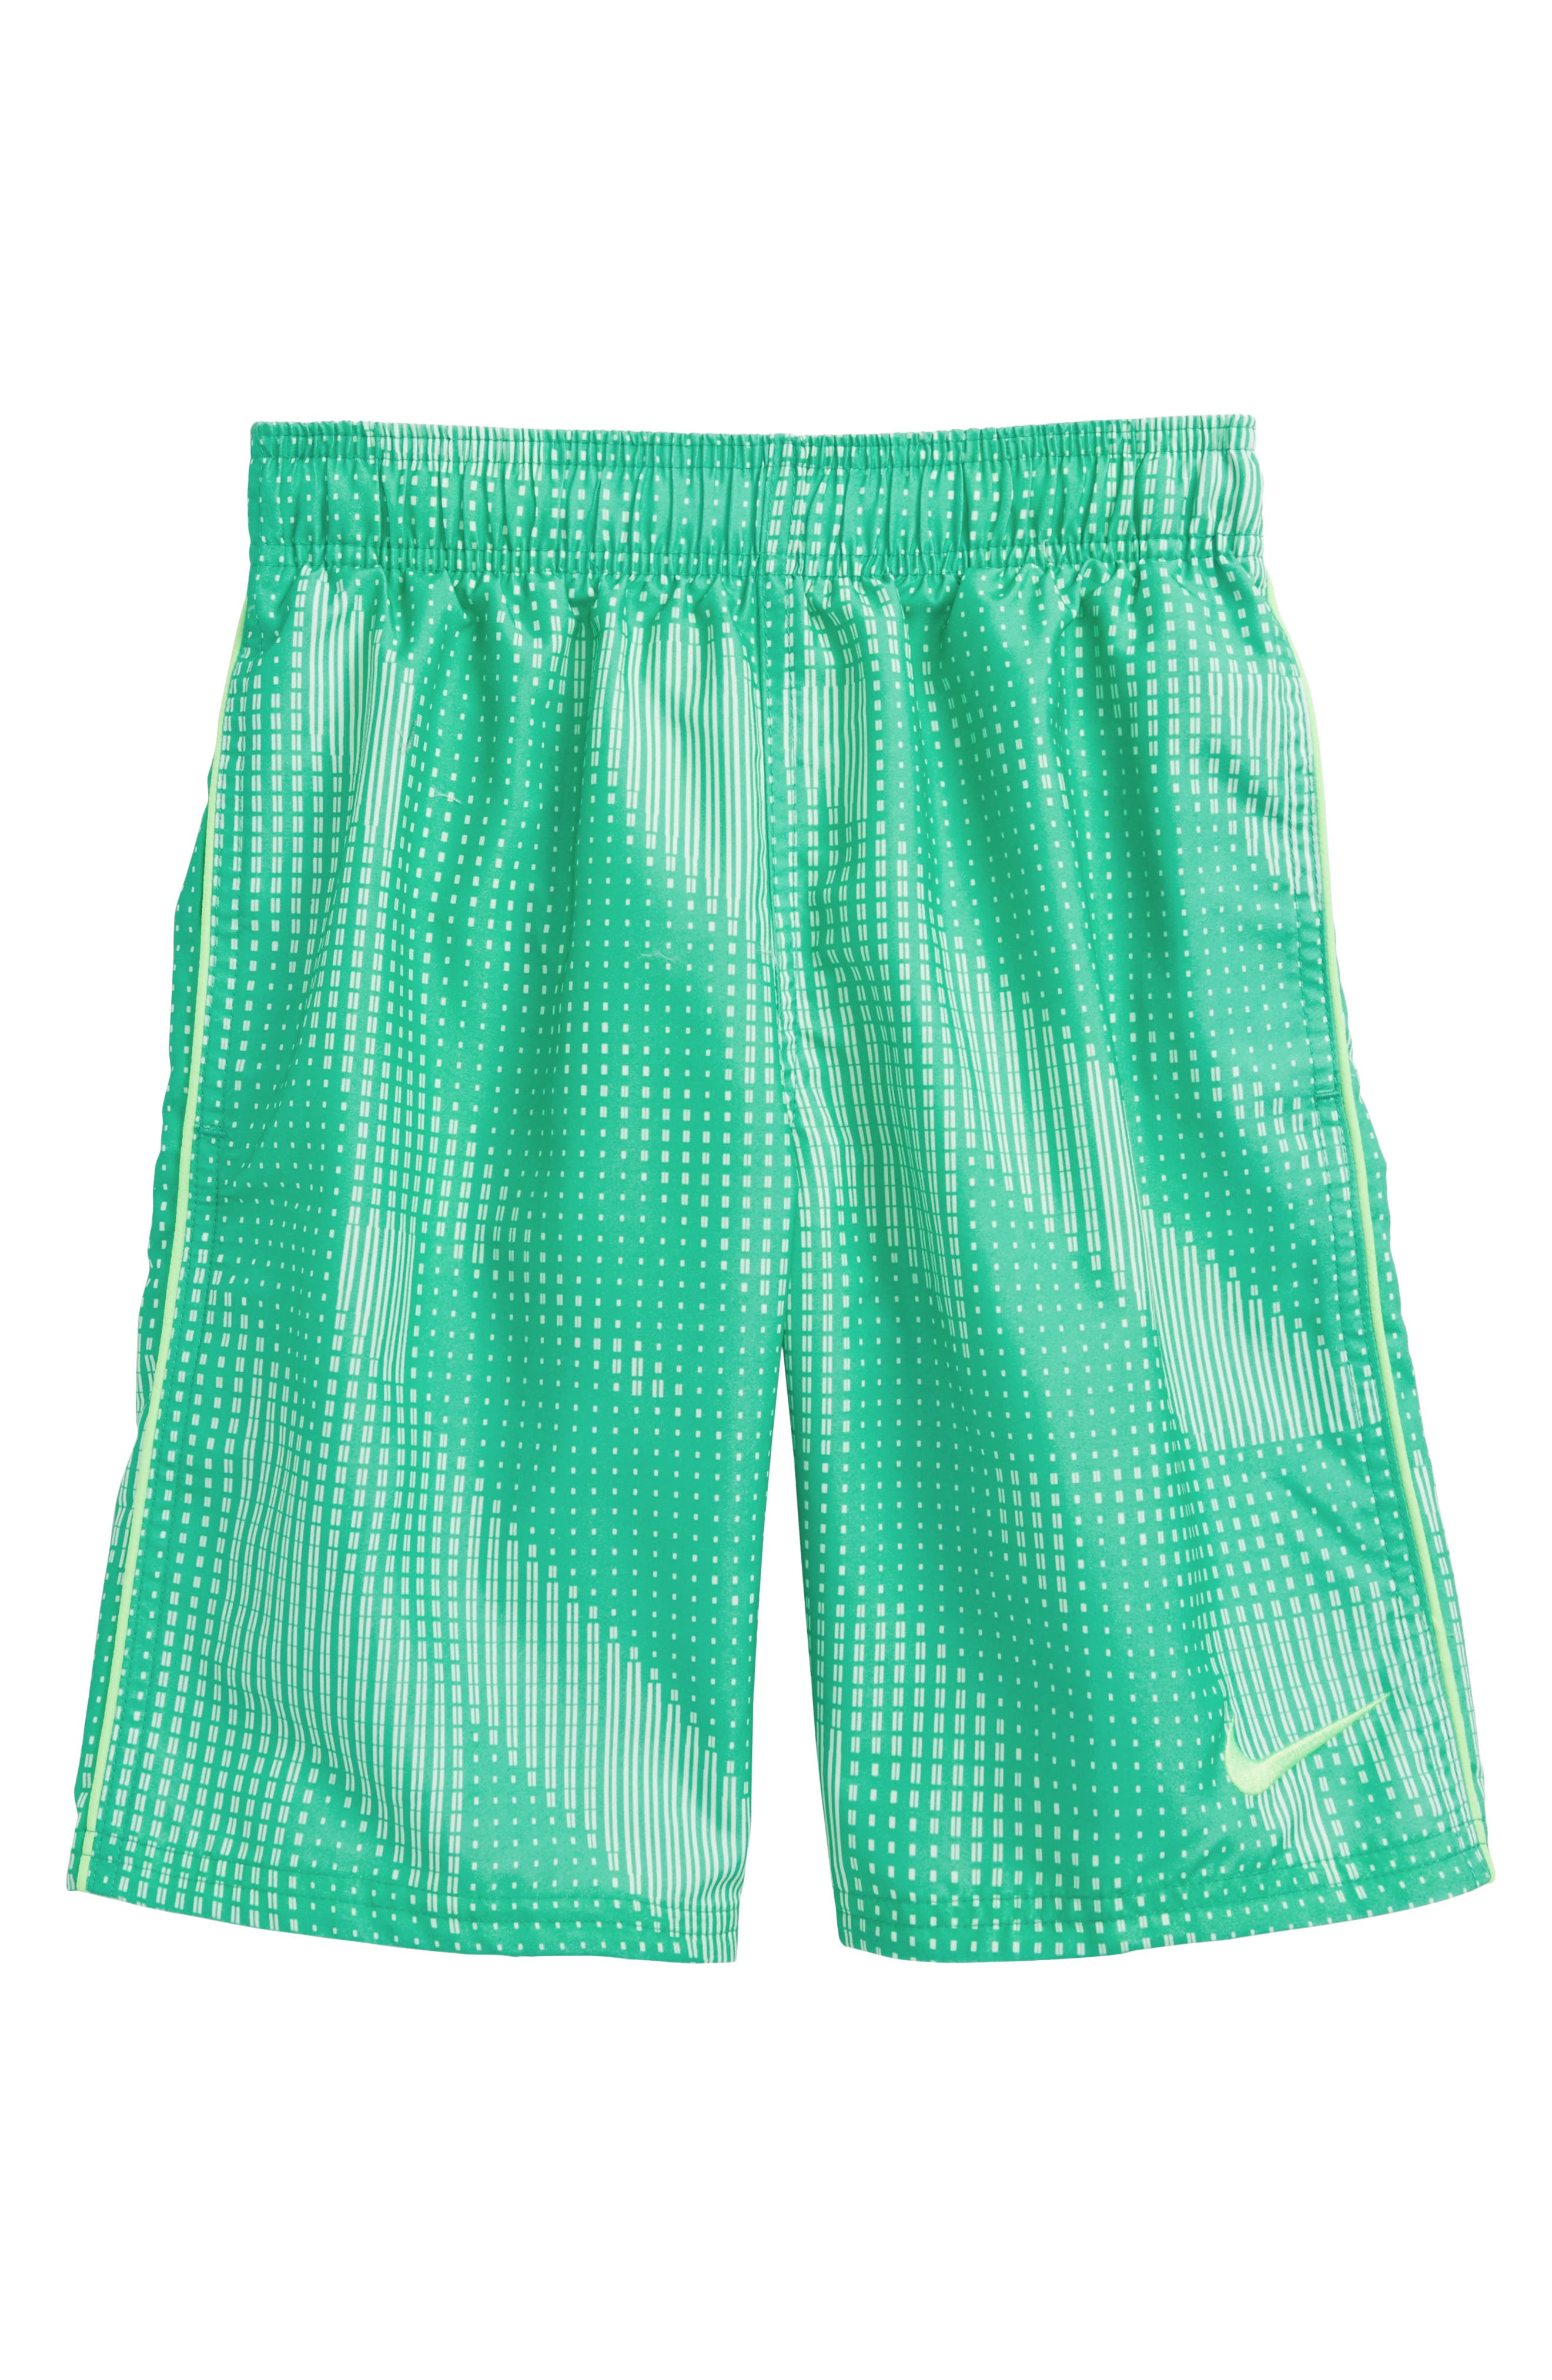 Diverge Volley Shorts,                         Main,                         color, 370